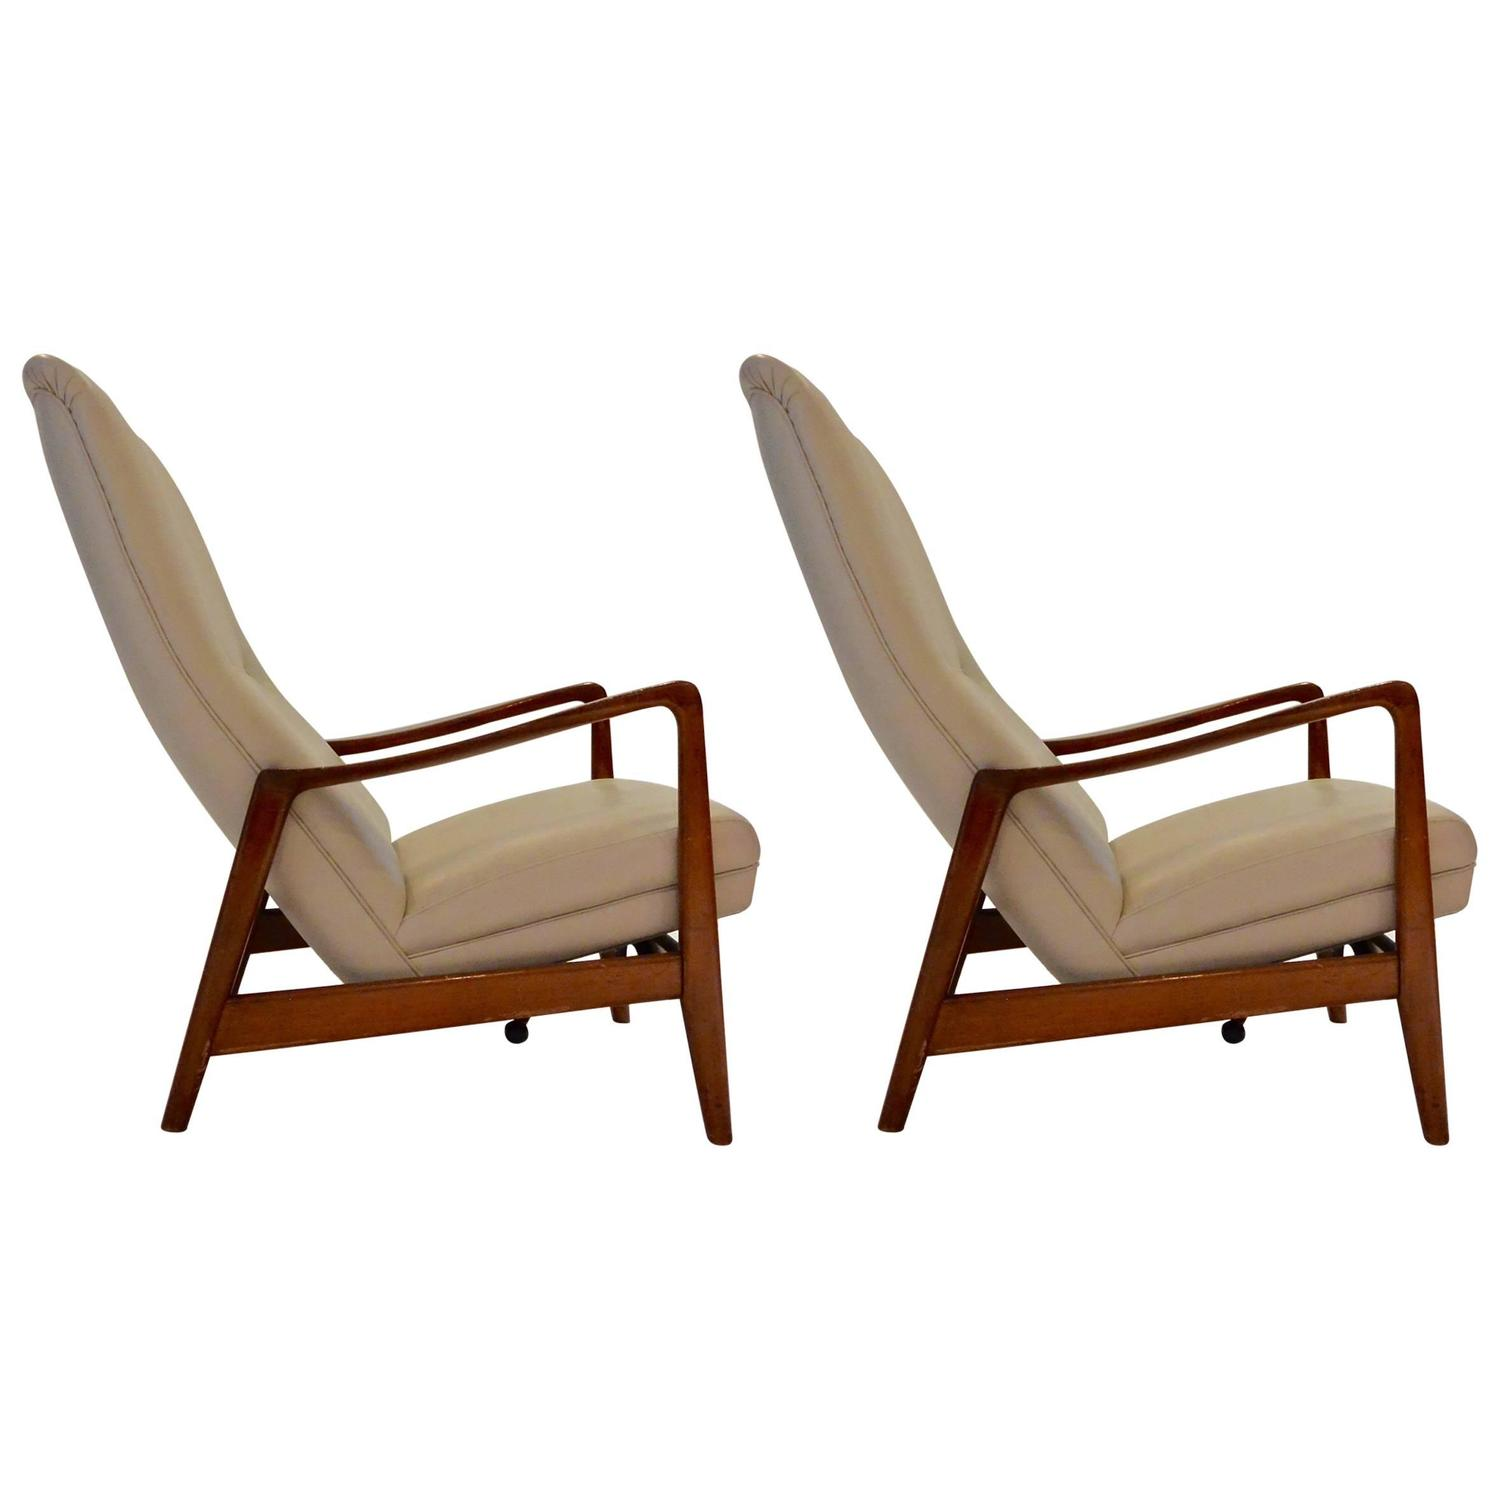 """Pair of Lounge Chairs by Gio Ponti """"829 """" circa 1963 at 1stdibs"""